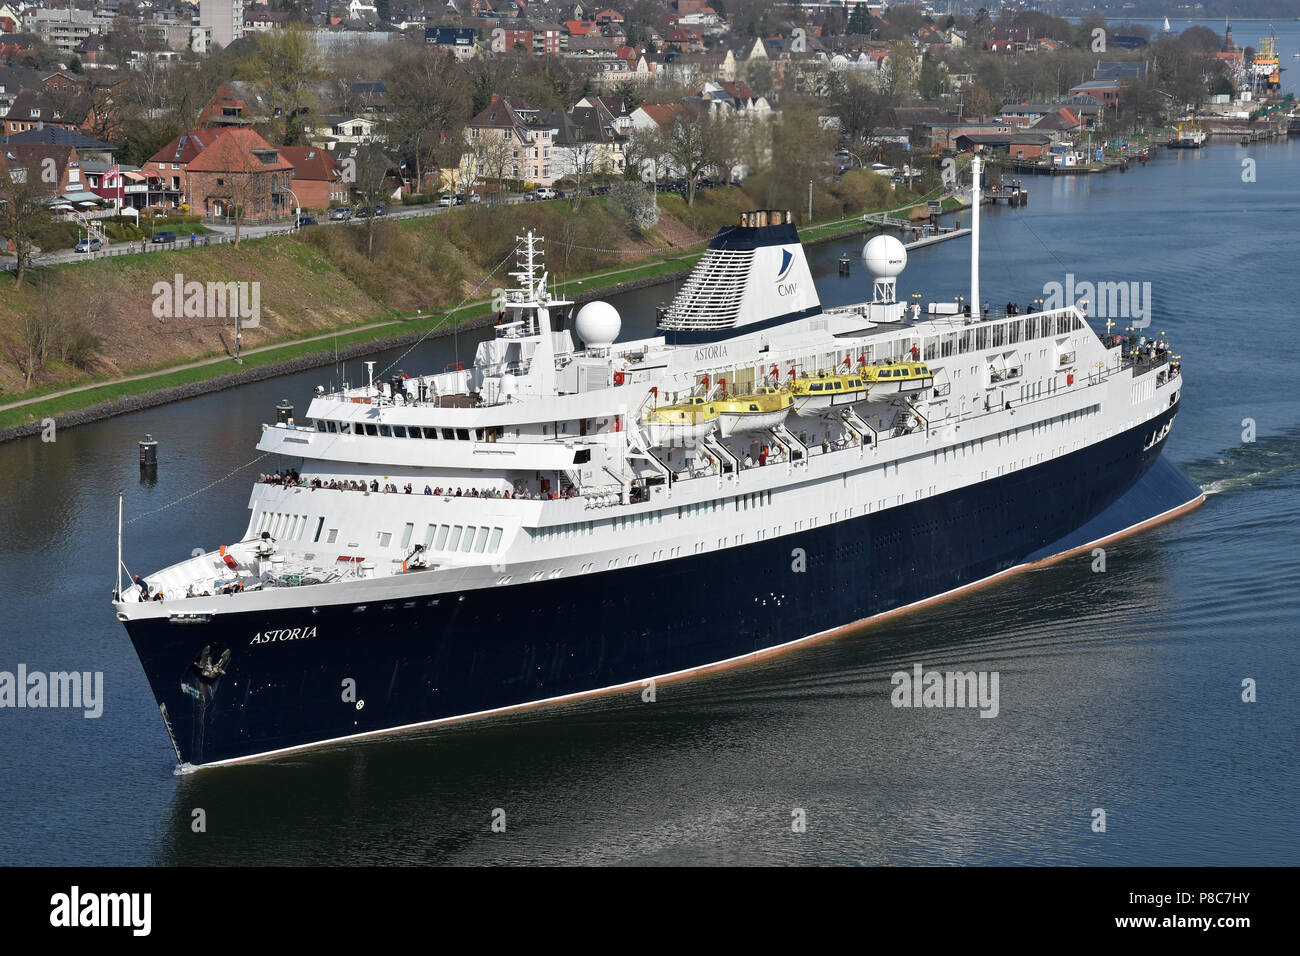 World's oldest still serving cruiseship Astoria in the Kiel canal Stock Photo